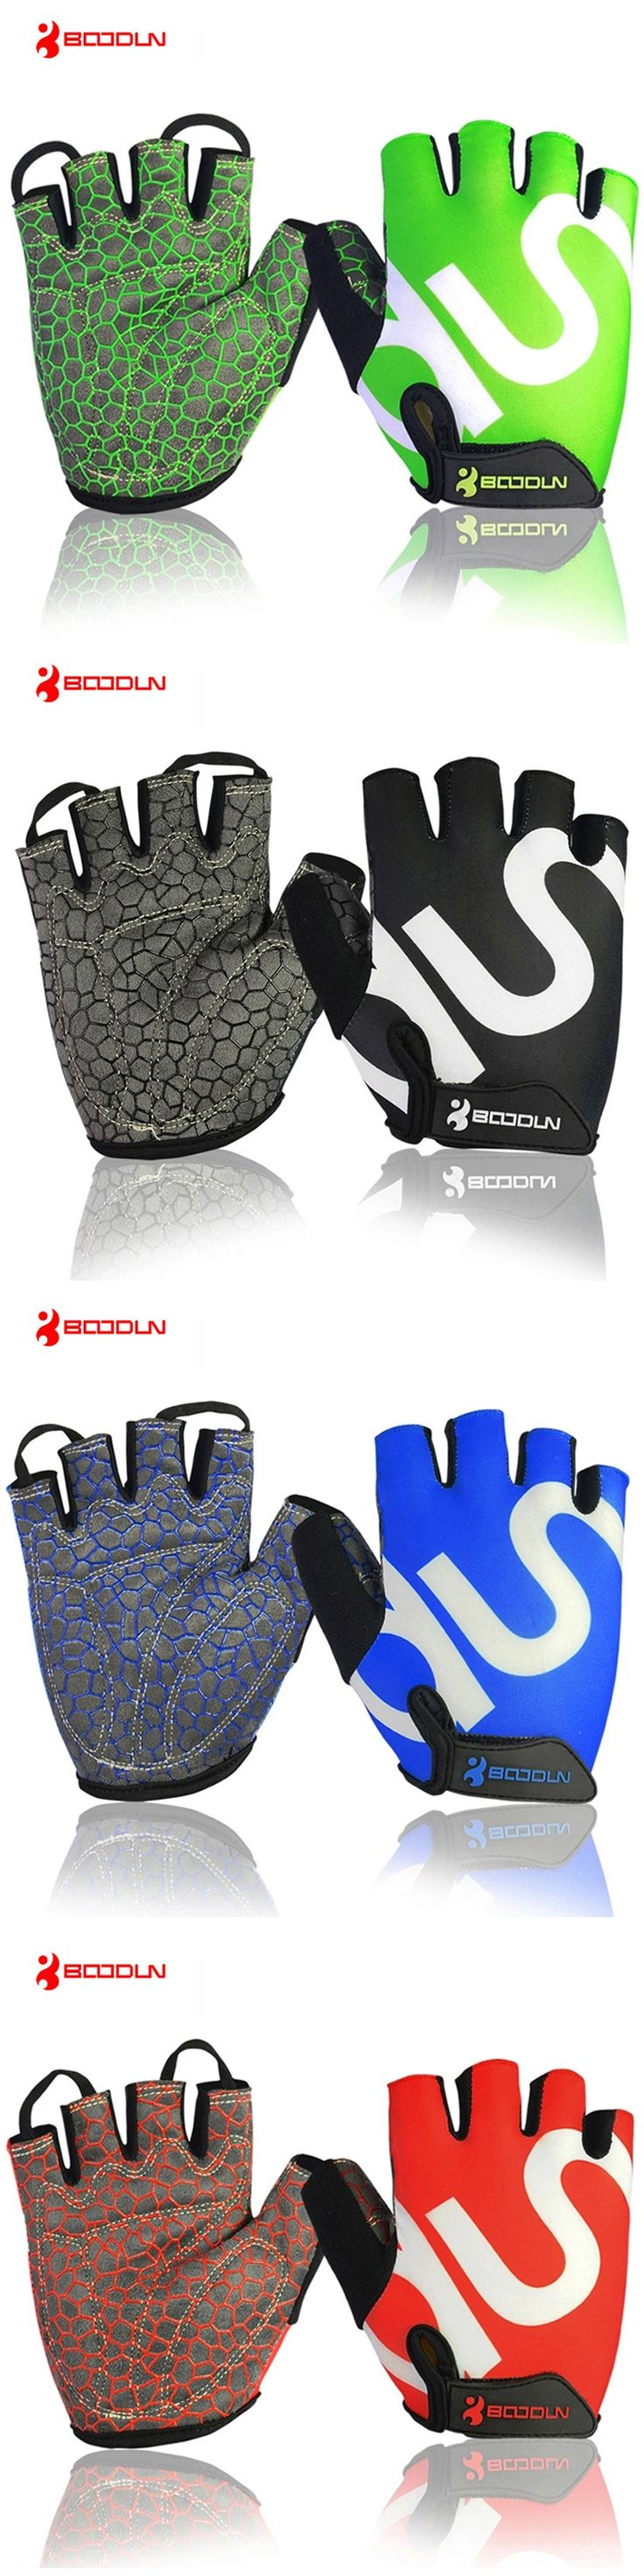 summer bicycle cycling gloves half finger women men mtb mountain bike gloves breathable anti slip sports gloves gym fitness